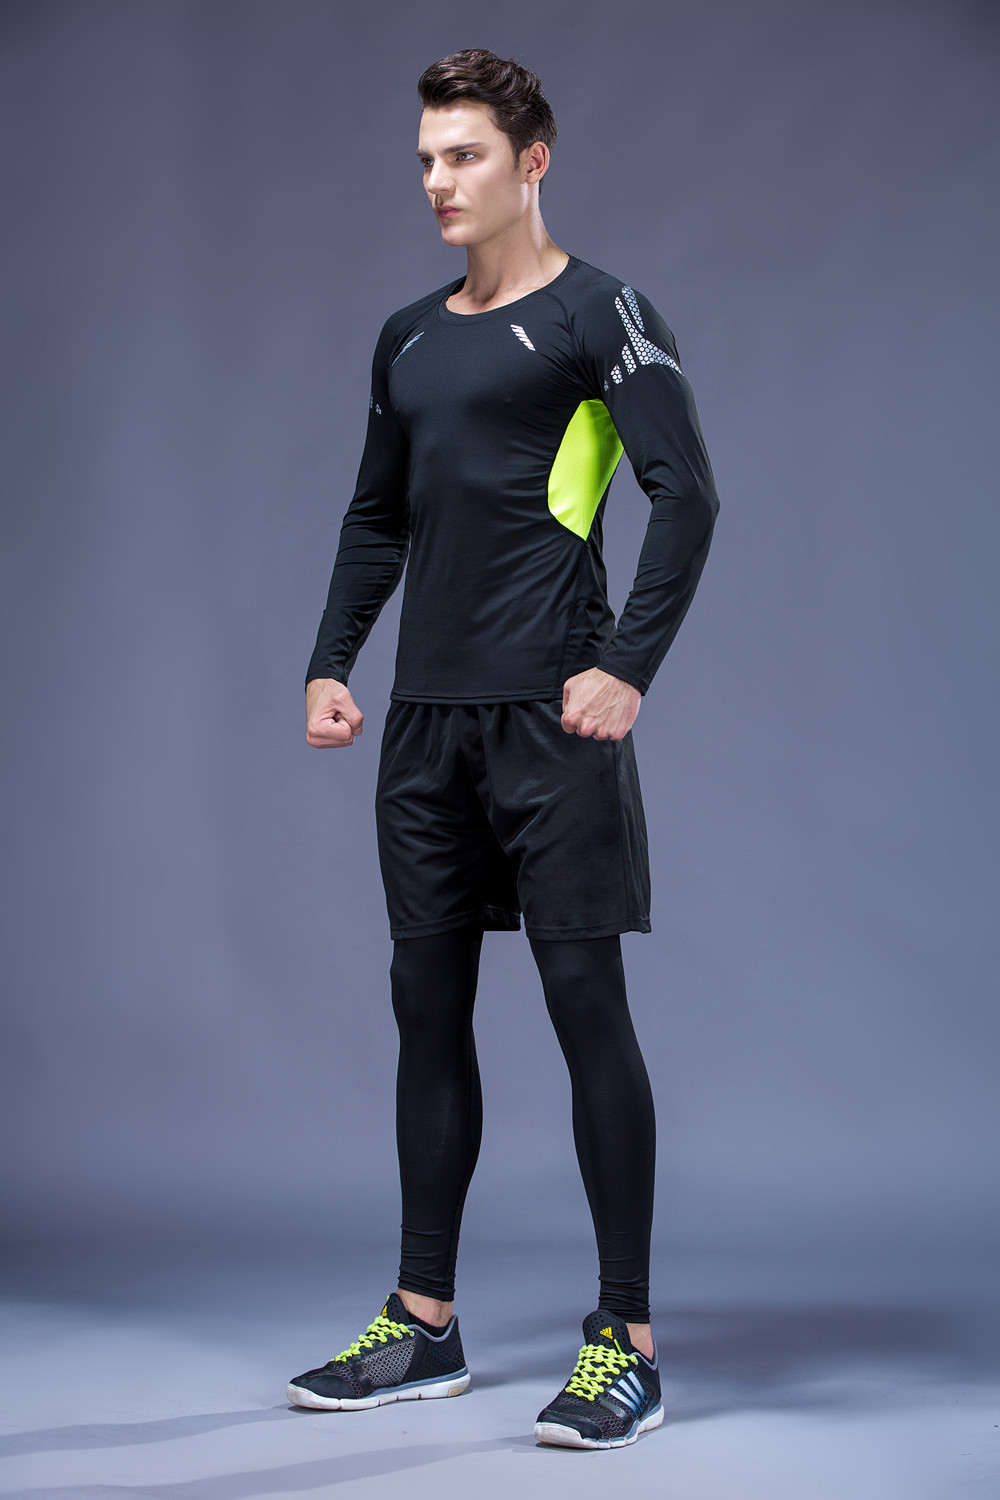 Foto from the right on men 5 pcs compressions clothes for gym. Men's 5 pcs compression tracksuit sports